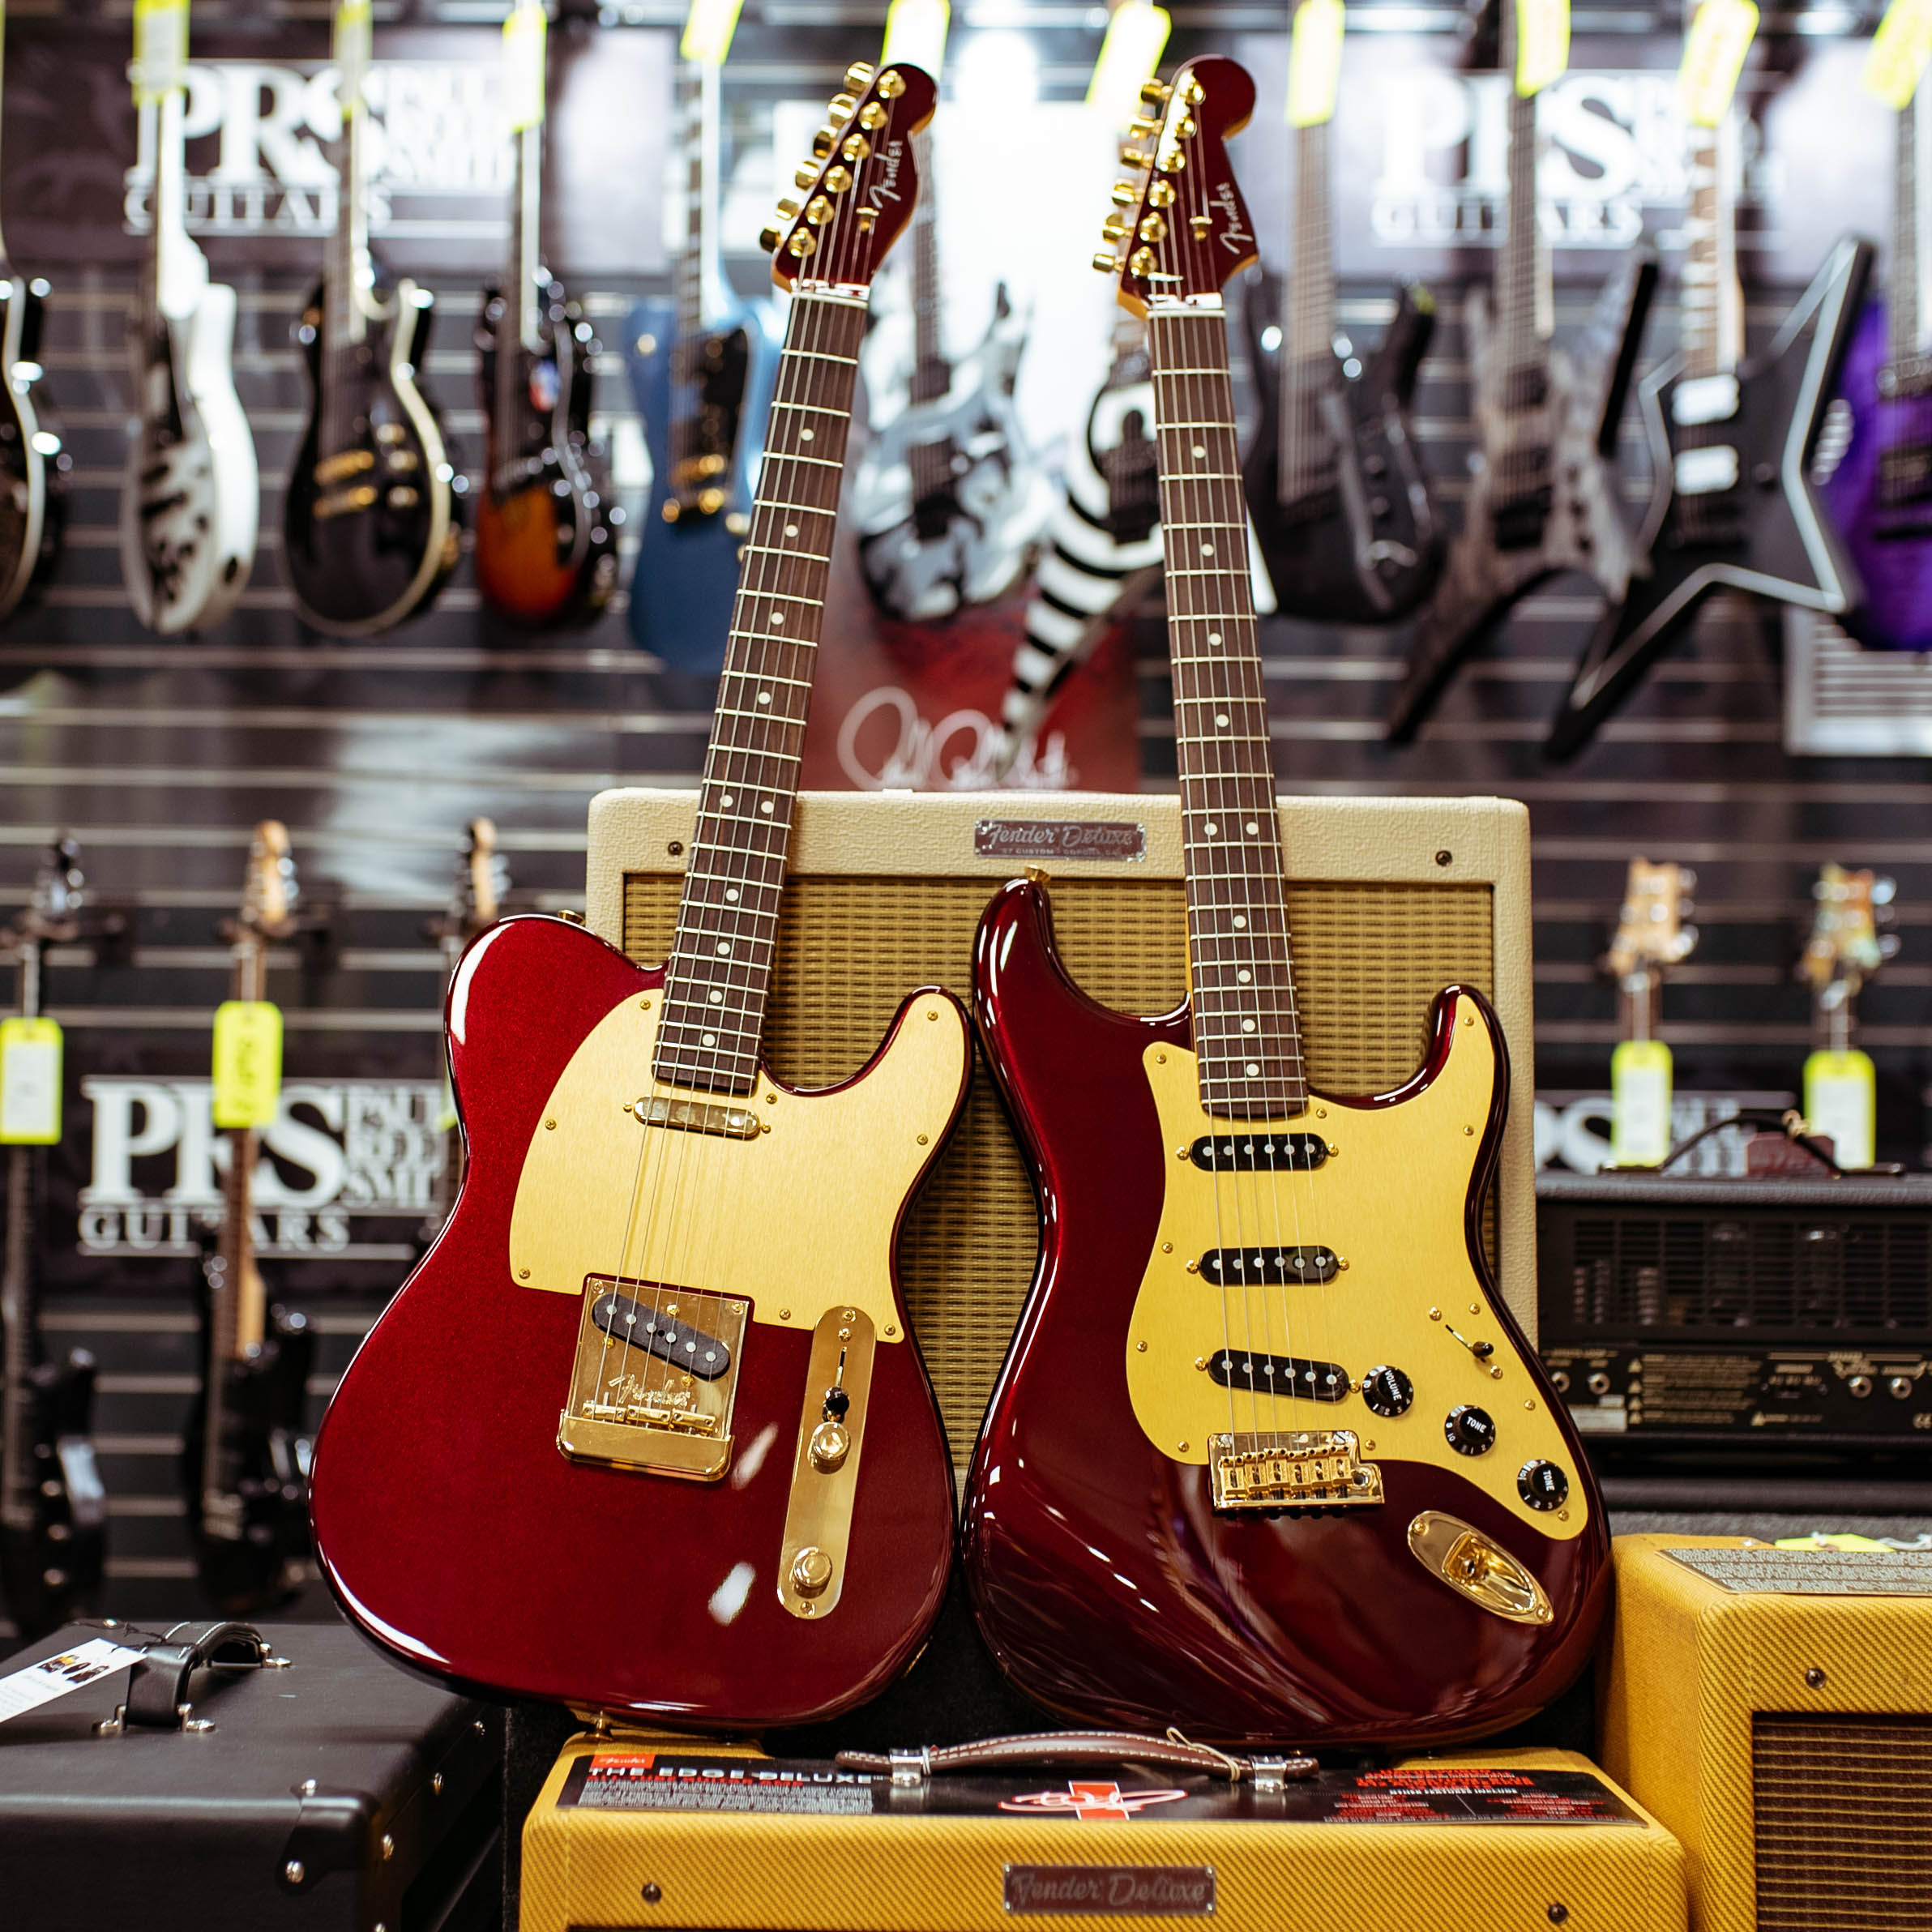 - Limited Edition Fender X Chuck Levin's 60th Anniversary Telecaster and Stratocaster designed for their 60th Anniversary in 2018. Only 30 of each instrument were built to commemorate 60 years in business